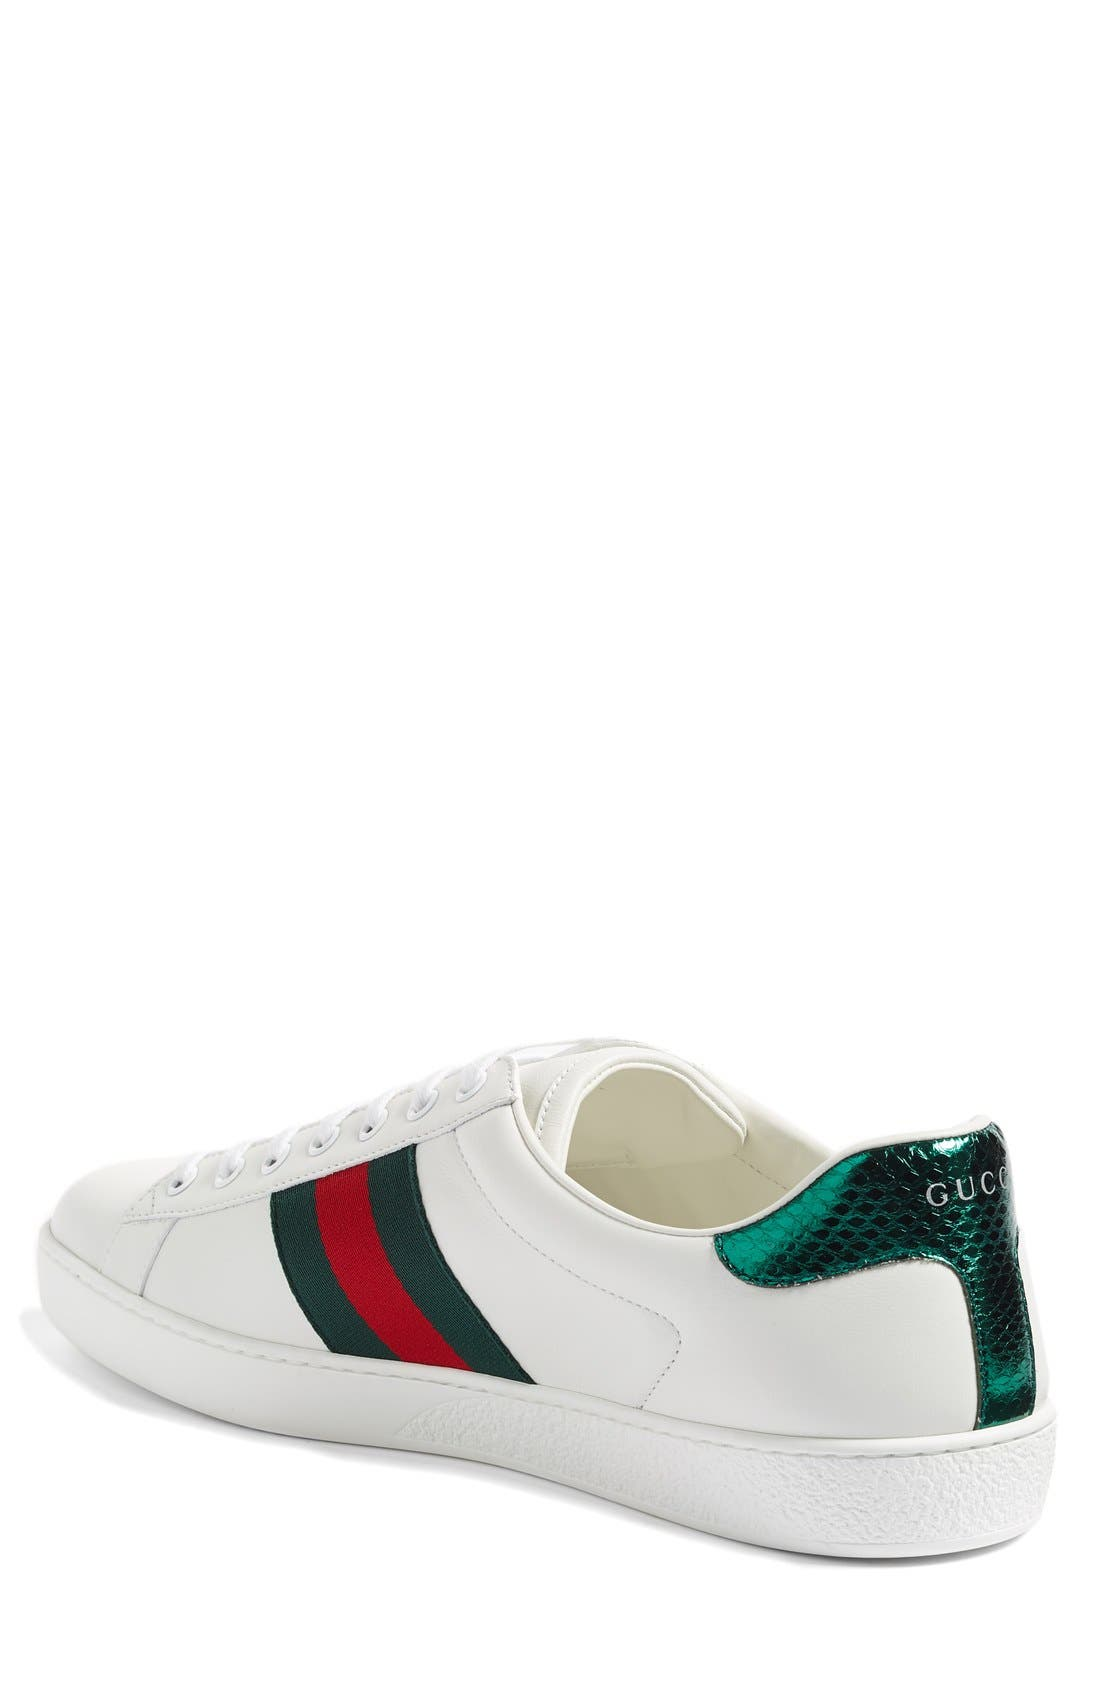 ,                             'New Ace' Sneaker,                             Alternate thumbnail 3, color,                             BIANCO LEATHER